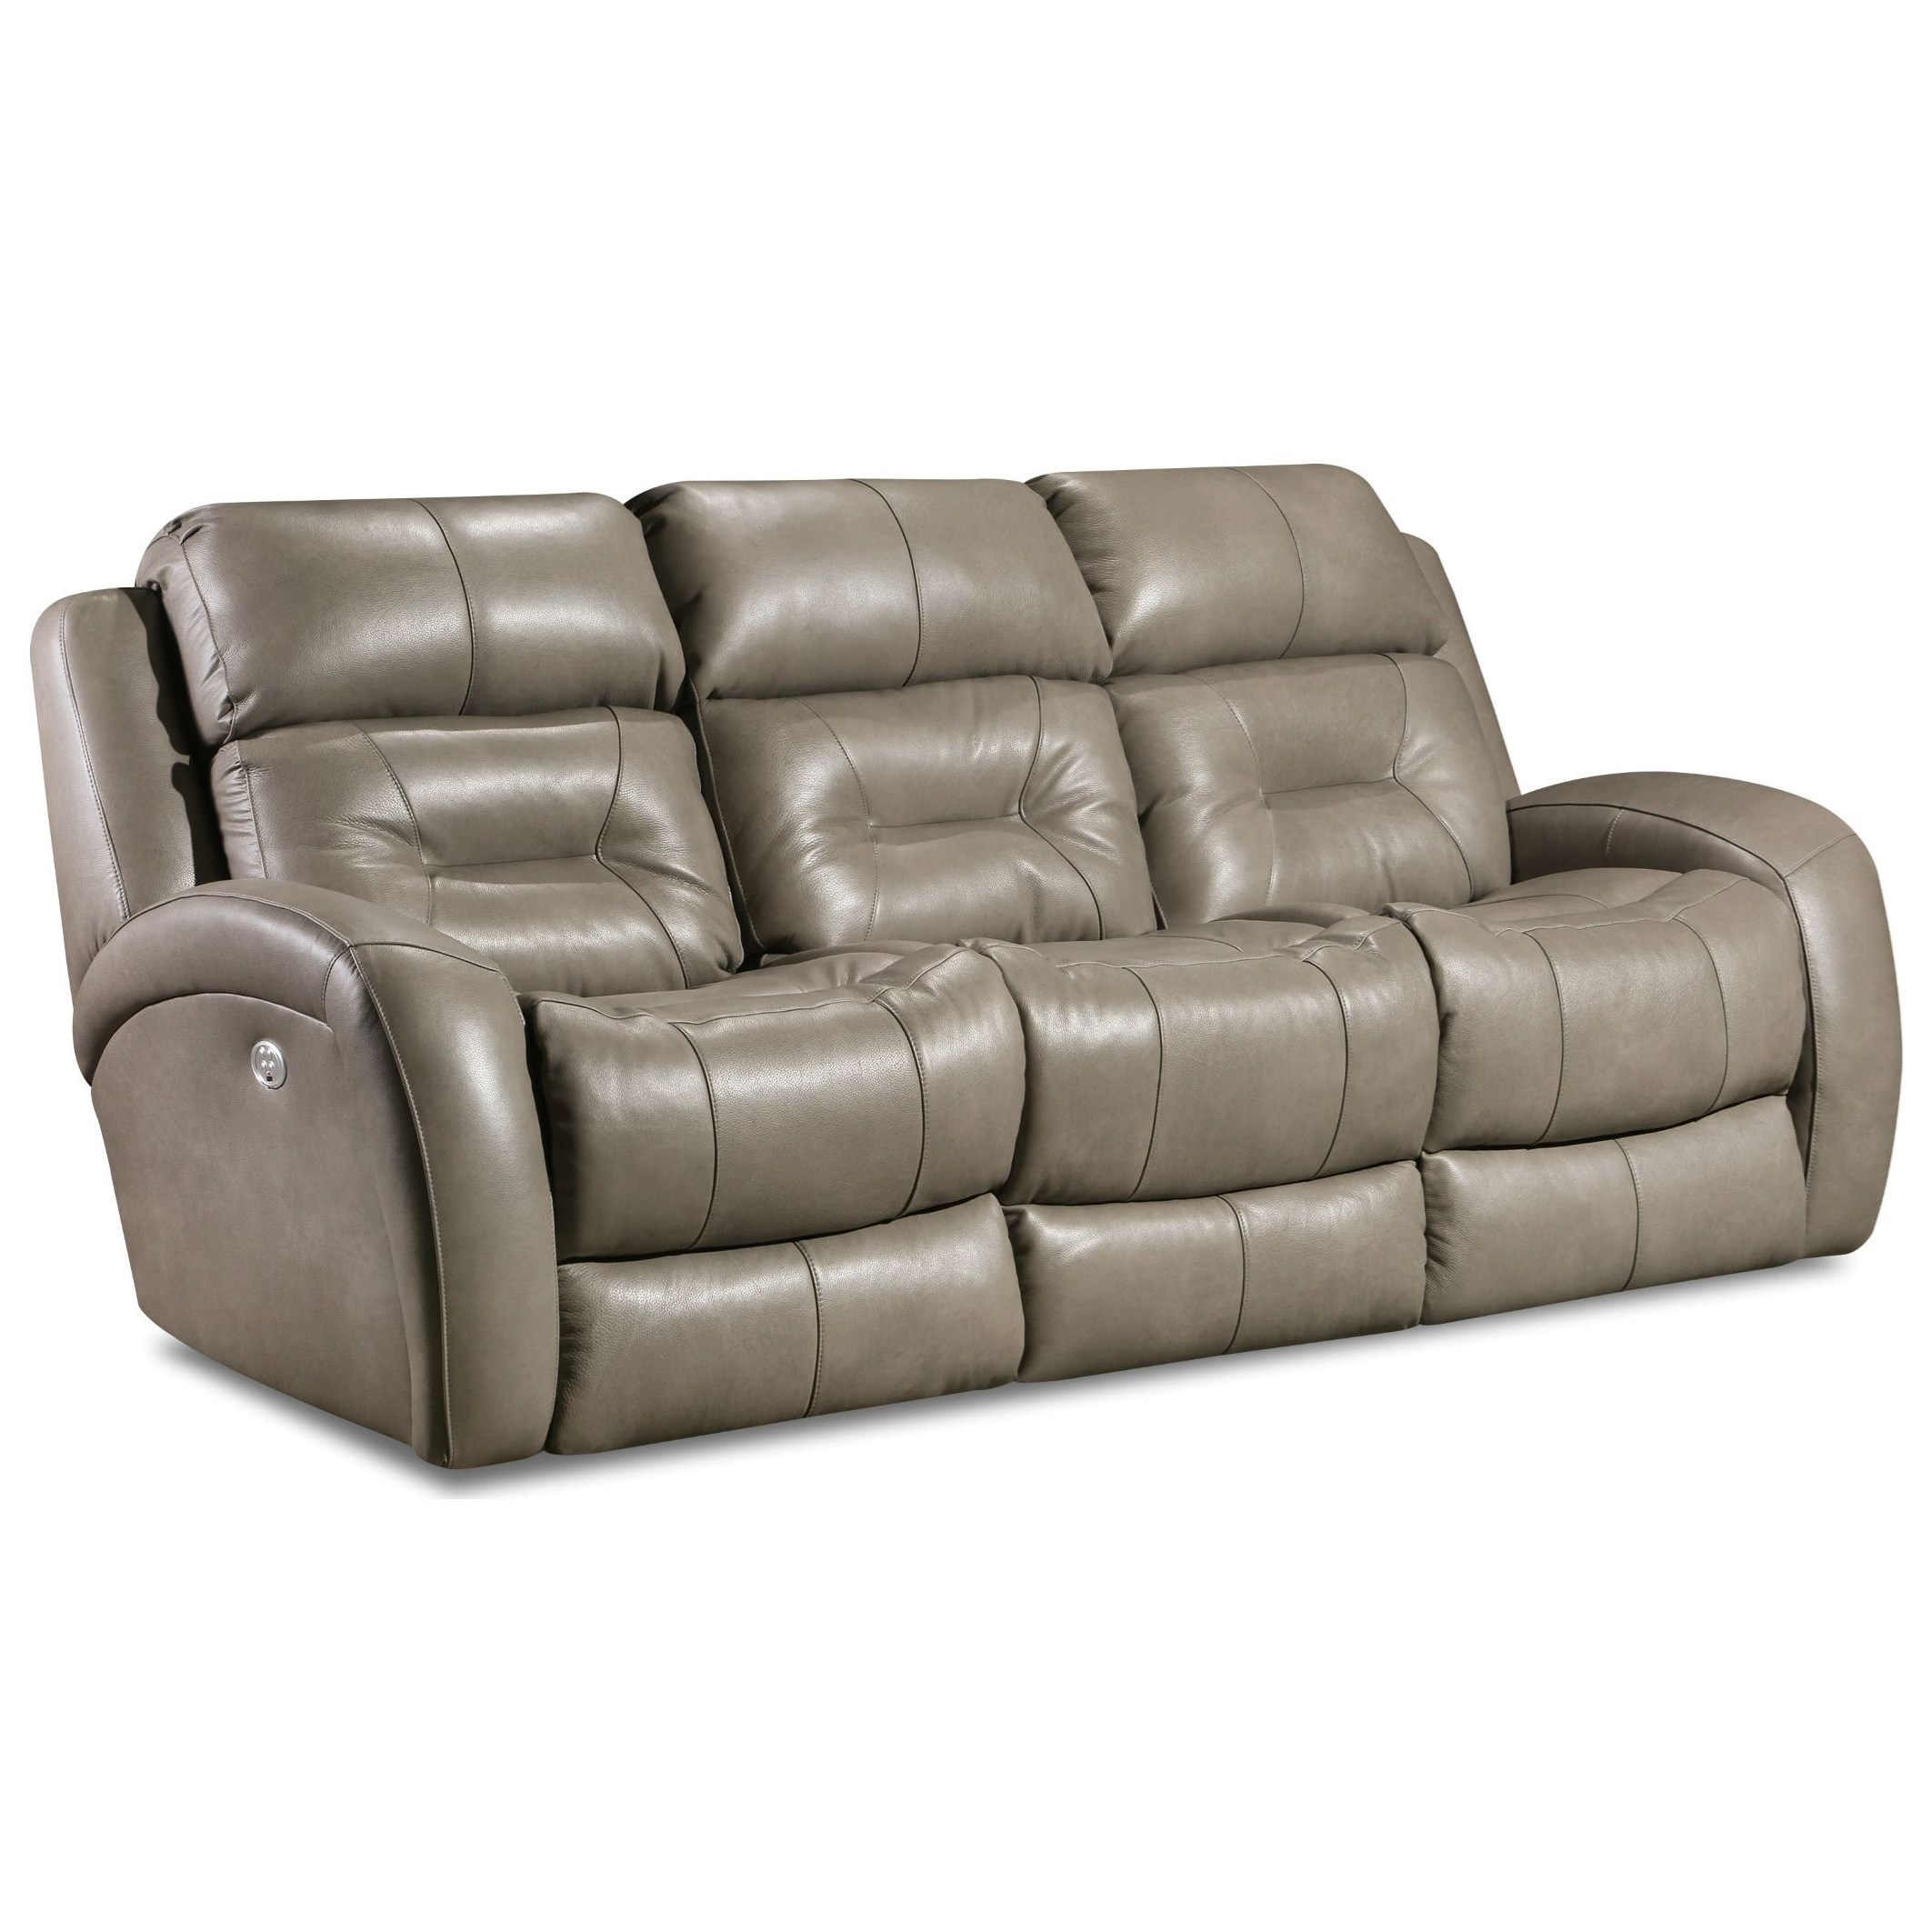 Southern Motion Showcase Double Reclining Sofa Westrich